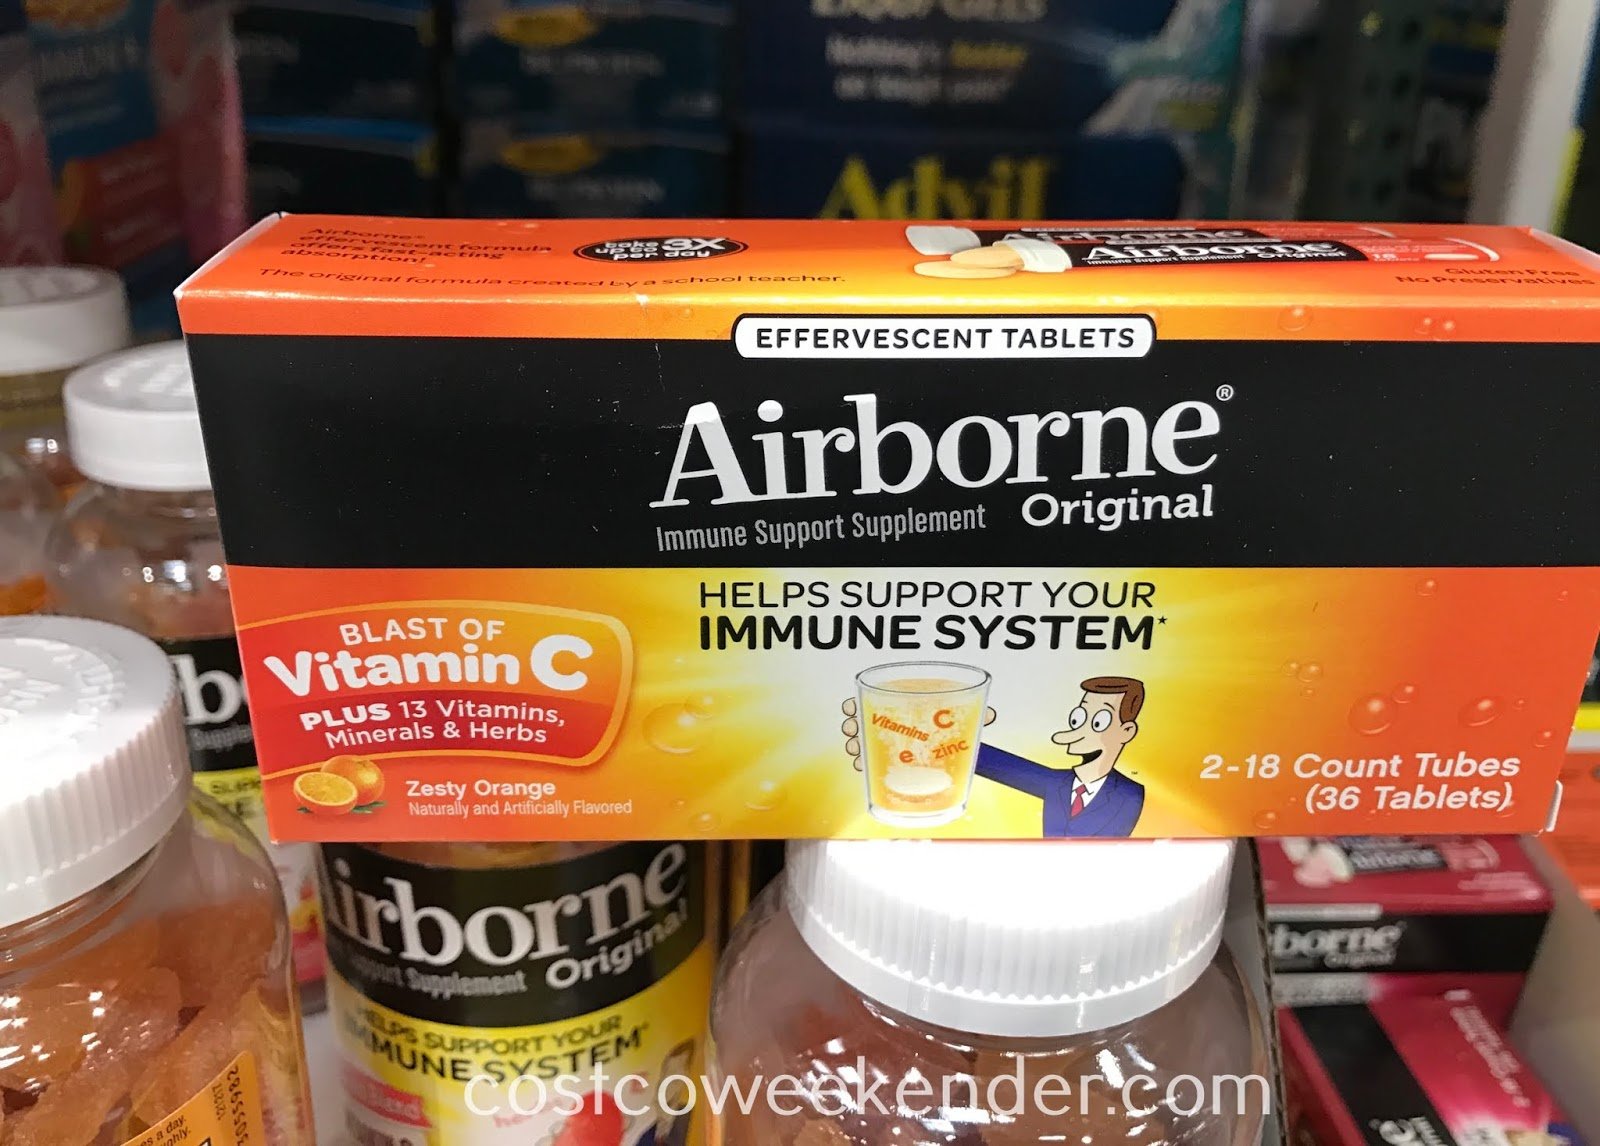 Ward off that cough and don't get sick with Airborne